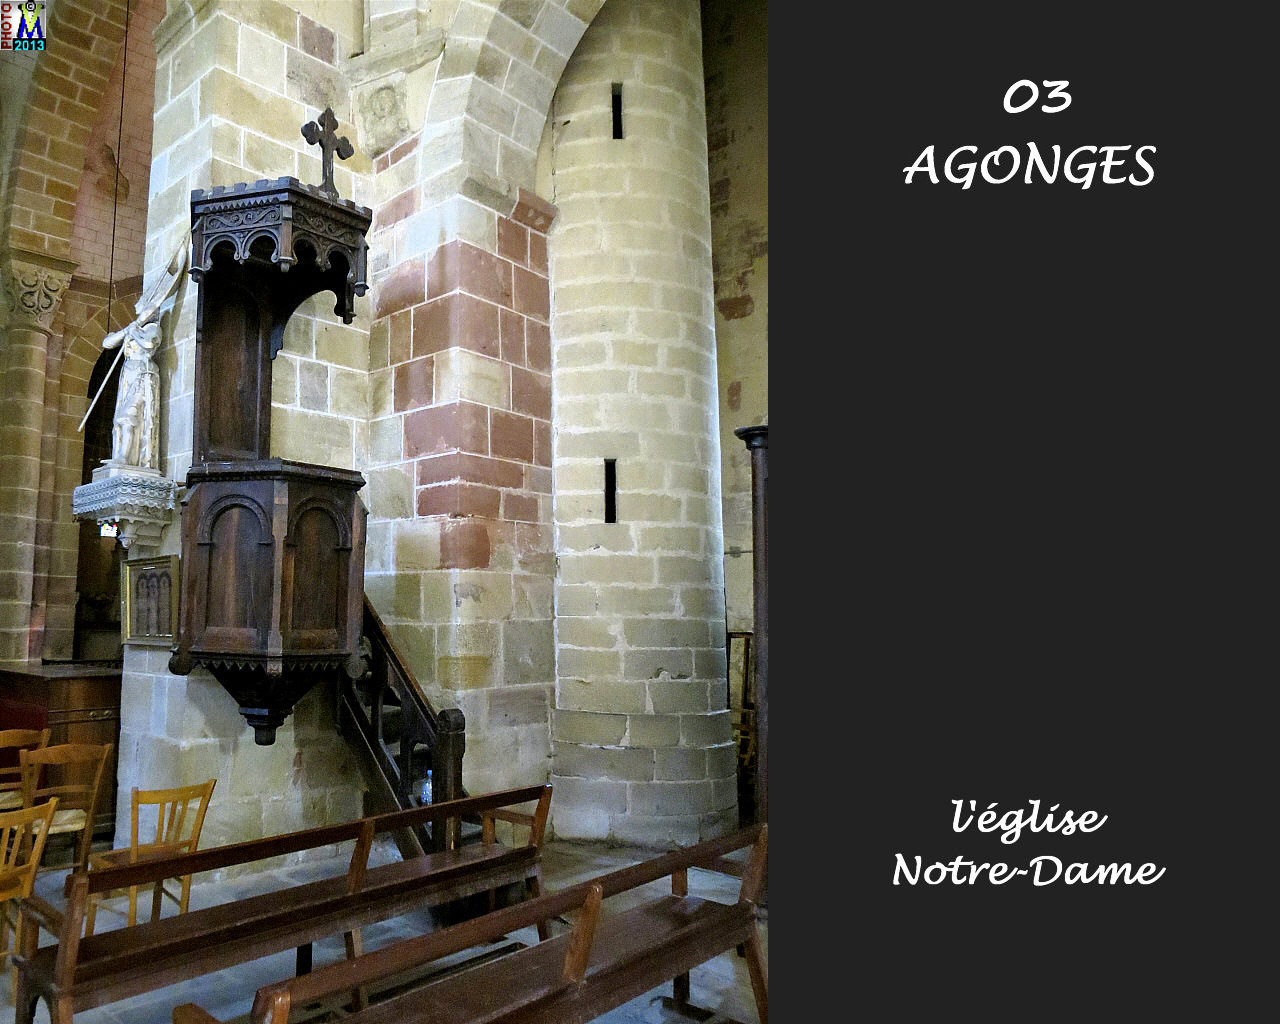 03AGONGES_eglise_240.jpg